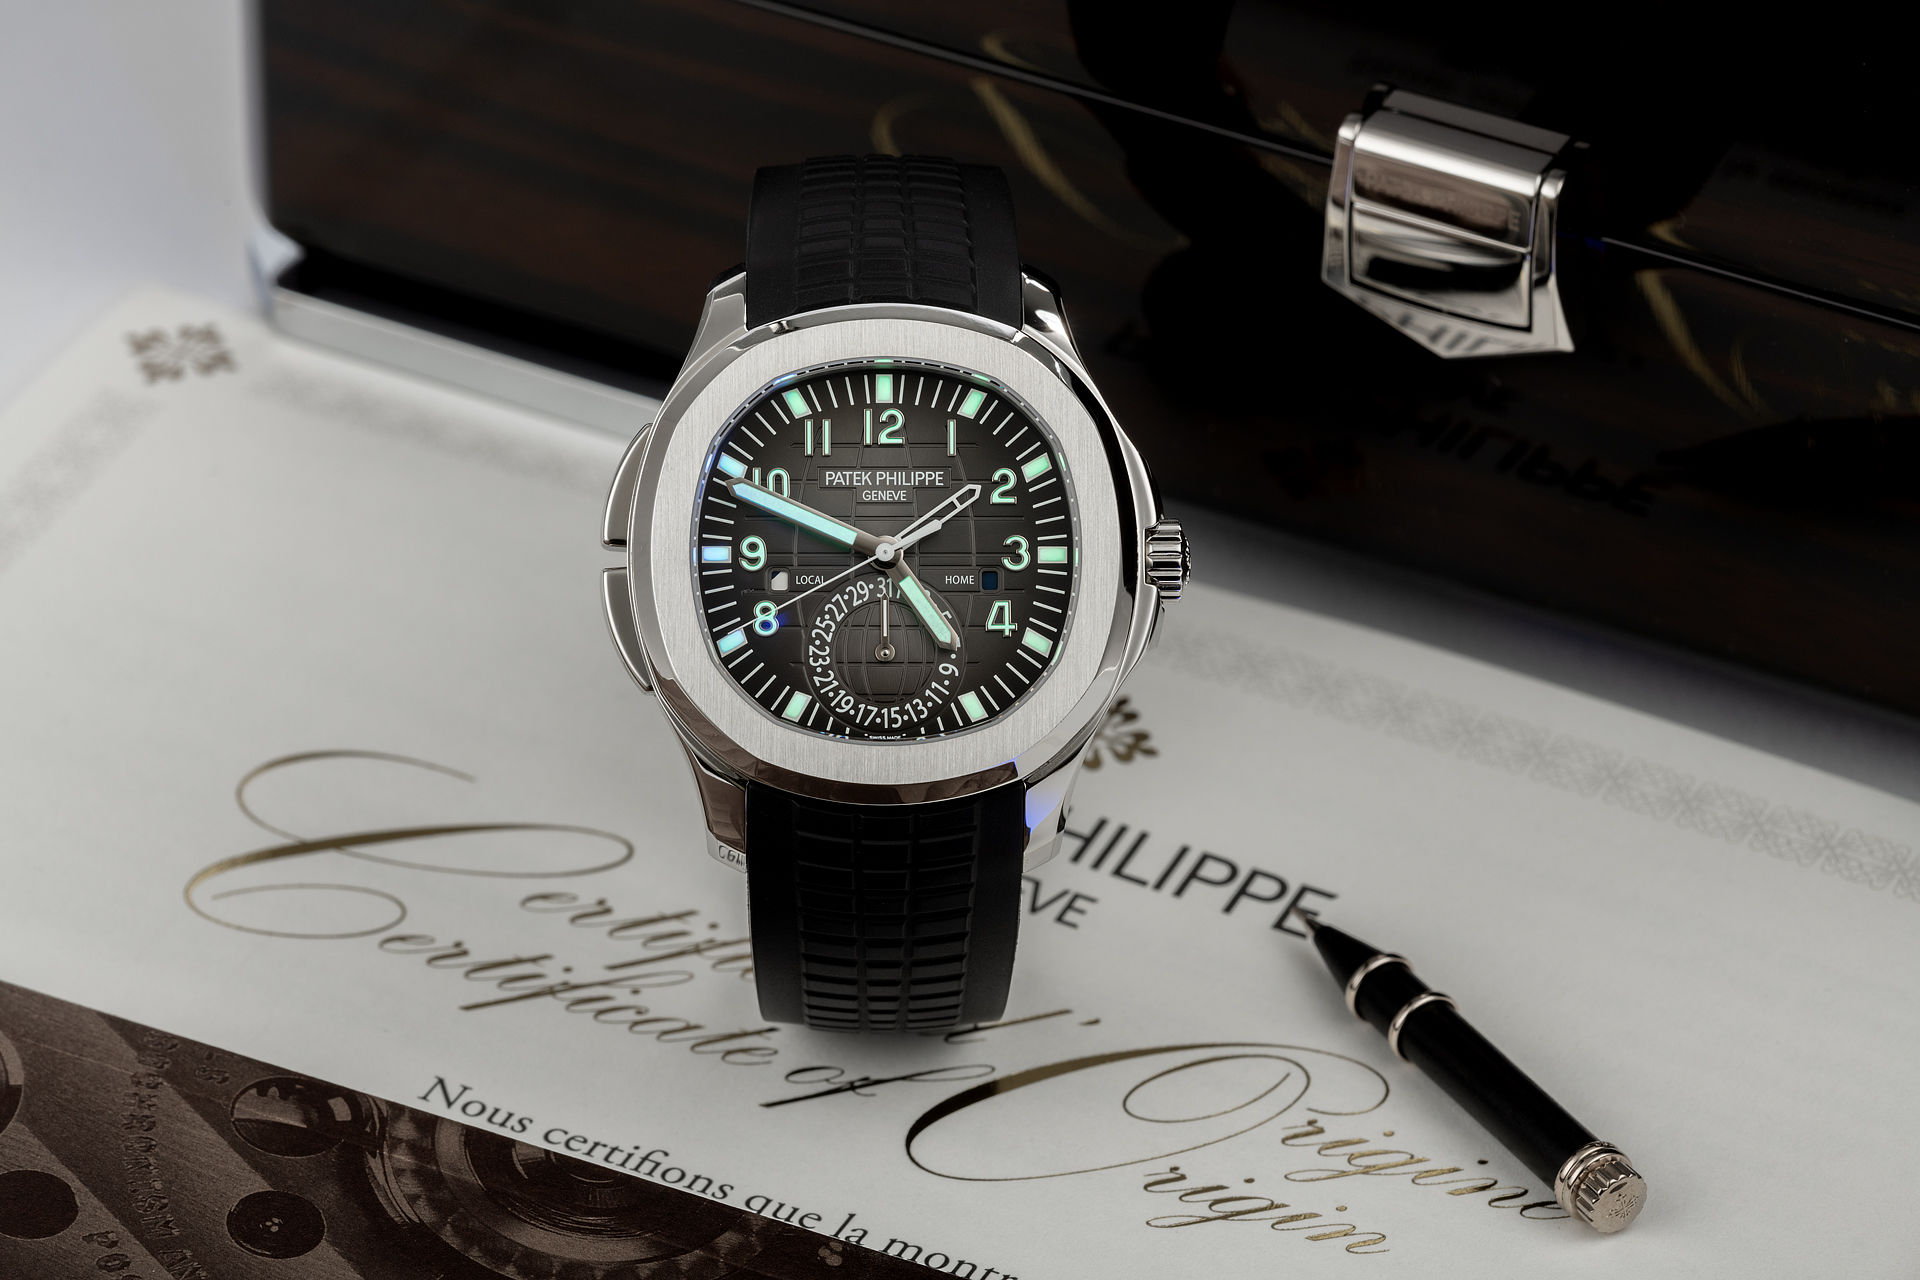 Patek Philippe Aquanaut Travel Time Watches | ref 5164A ...